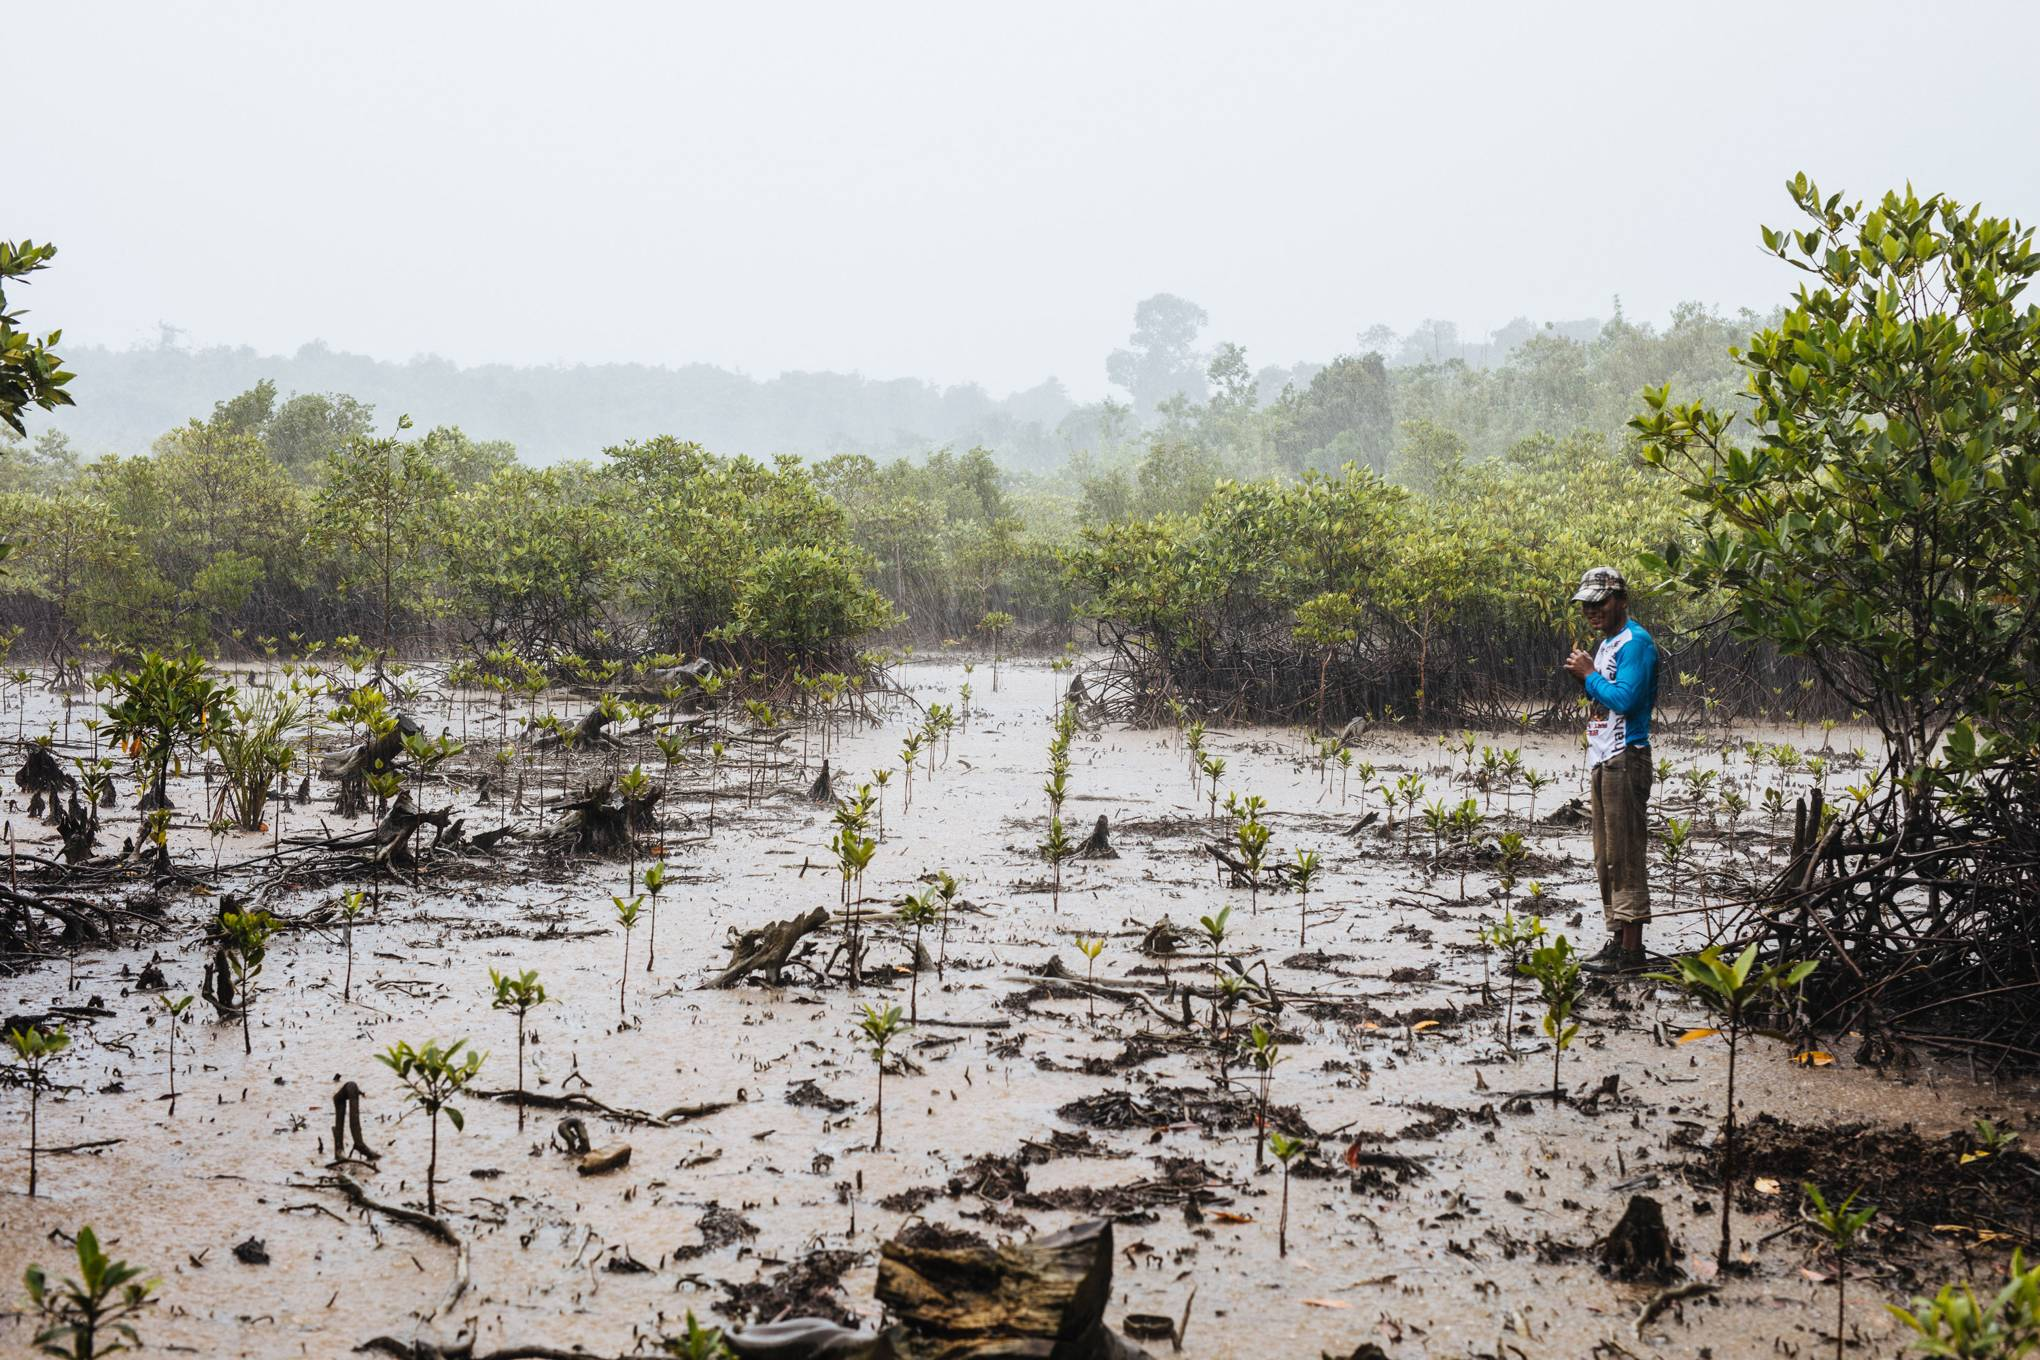 Tropical forests are dying  Seed-slinging drones can save